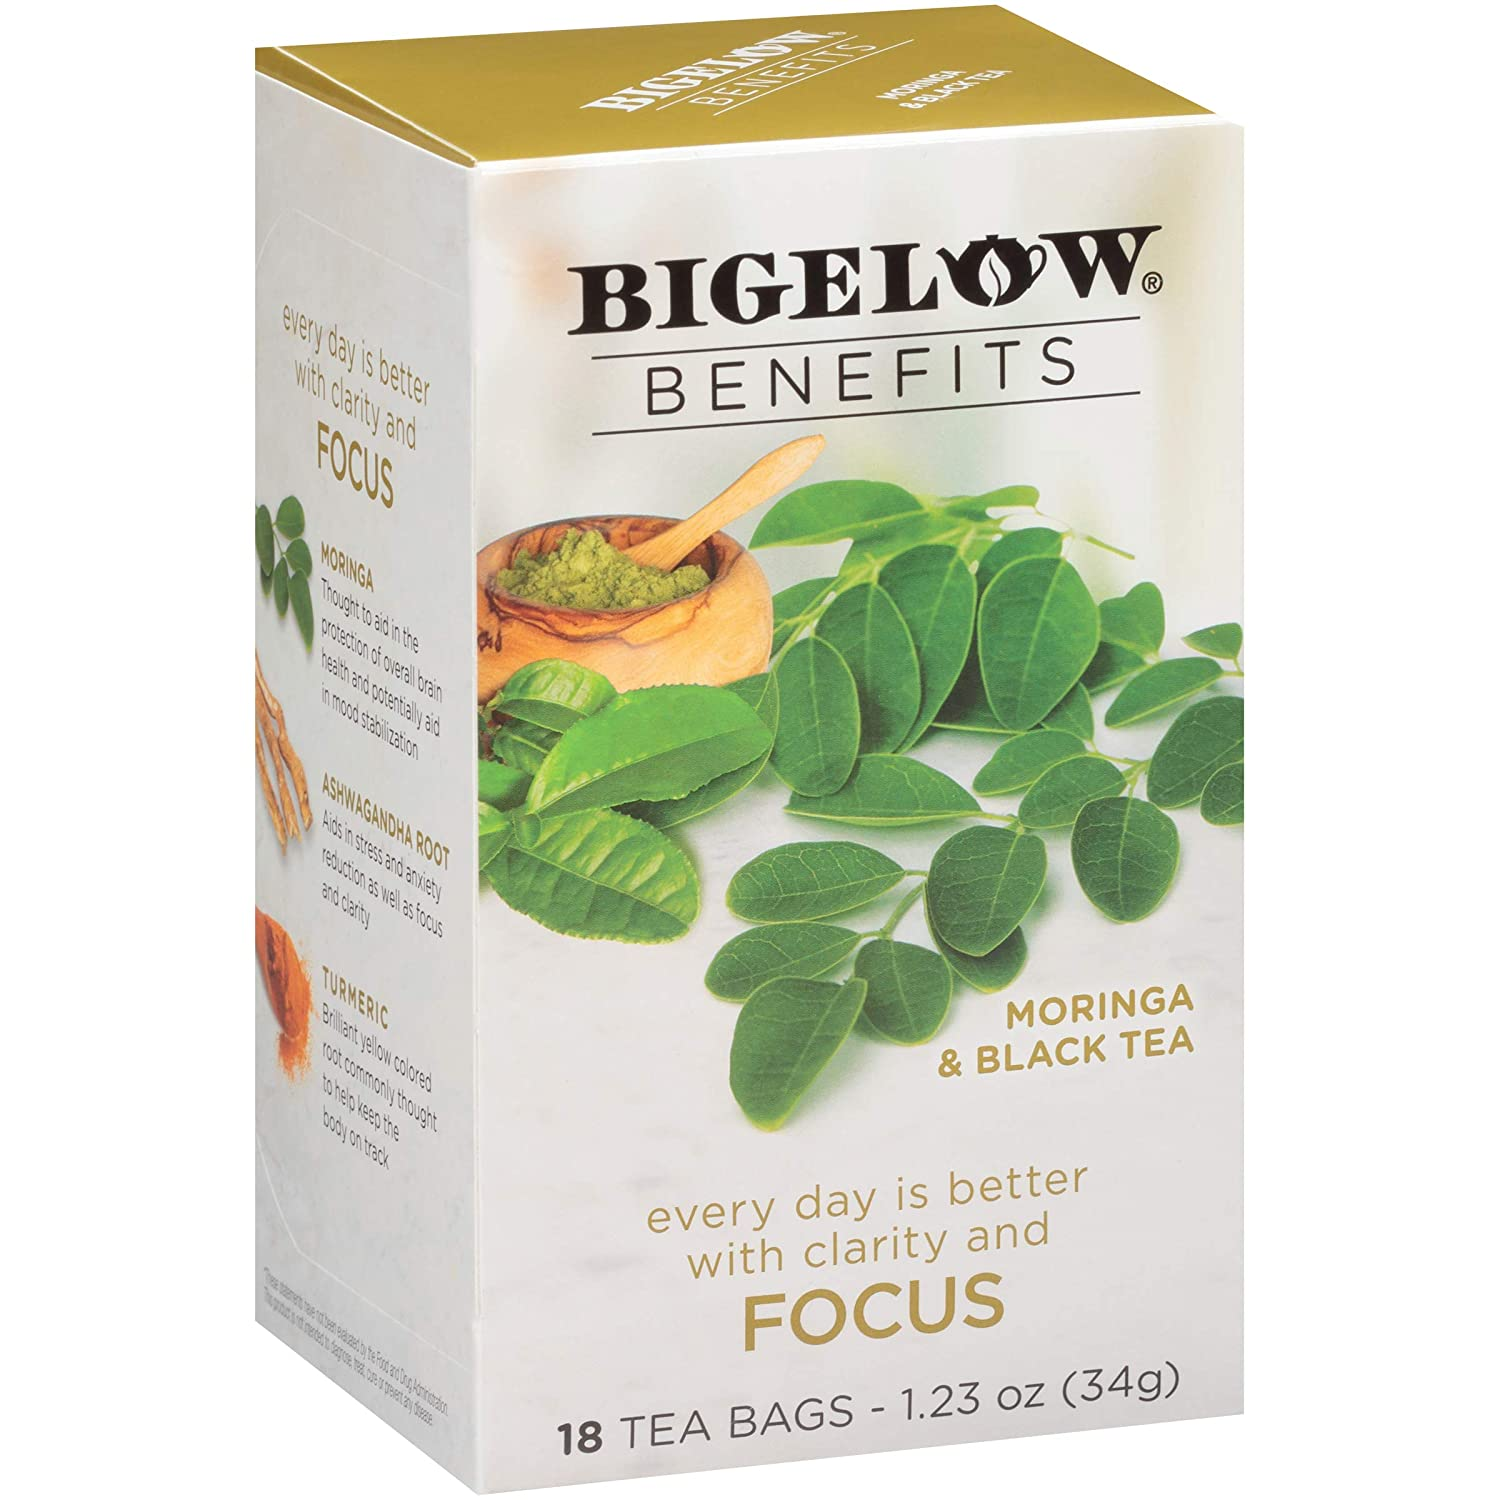 Bigelow Benefits Moringa & Black Tea, 18 Count